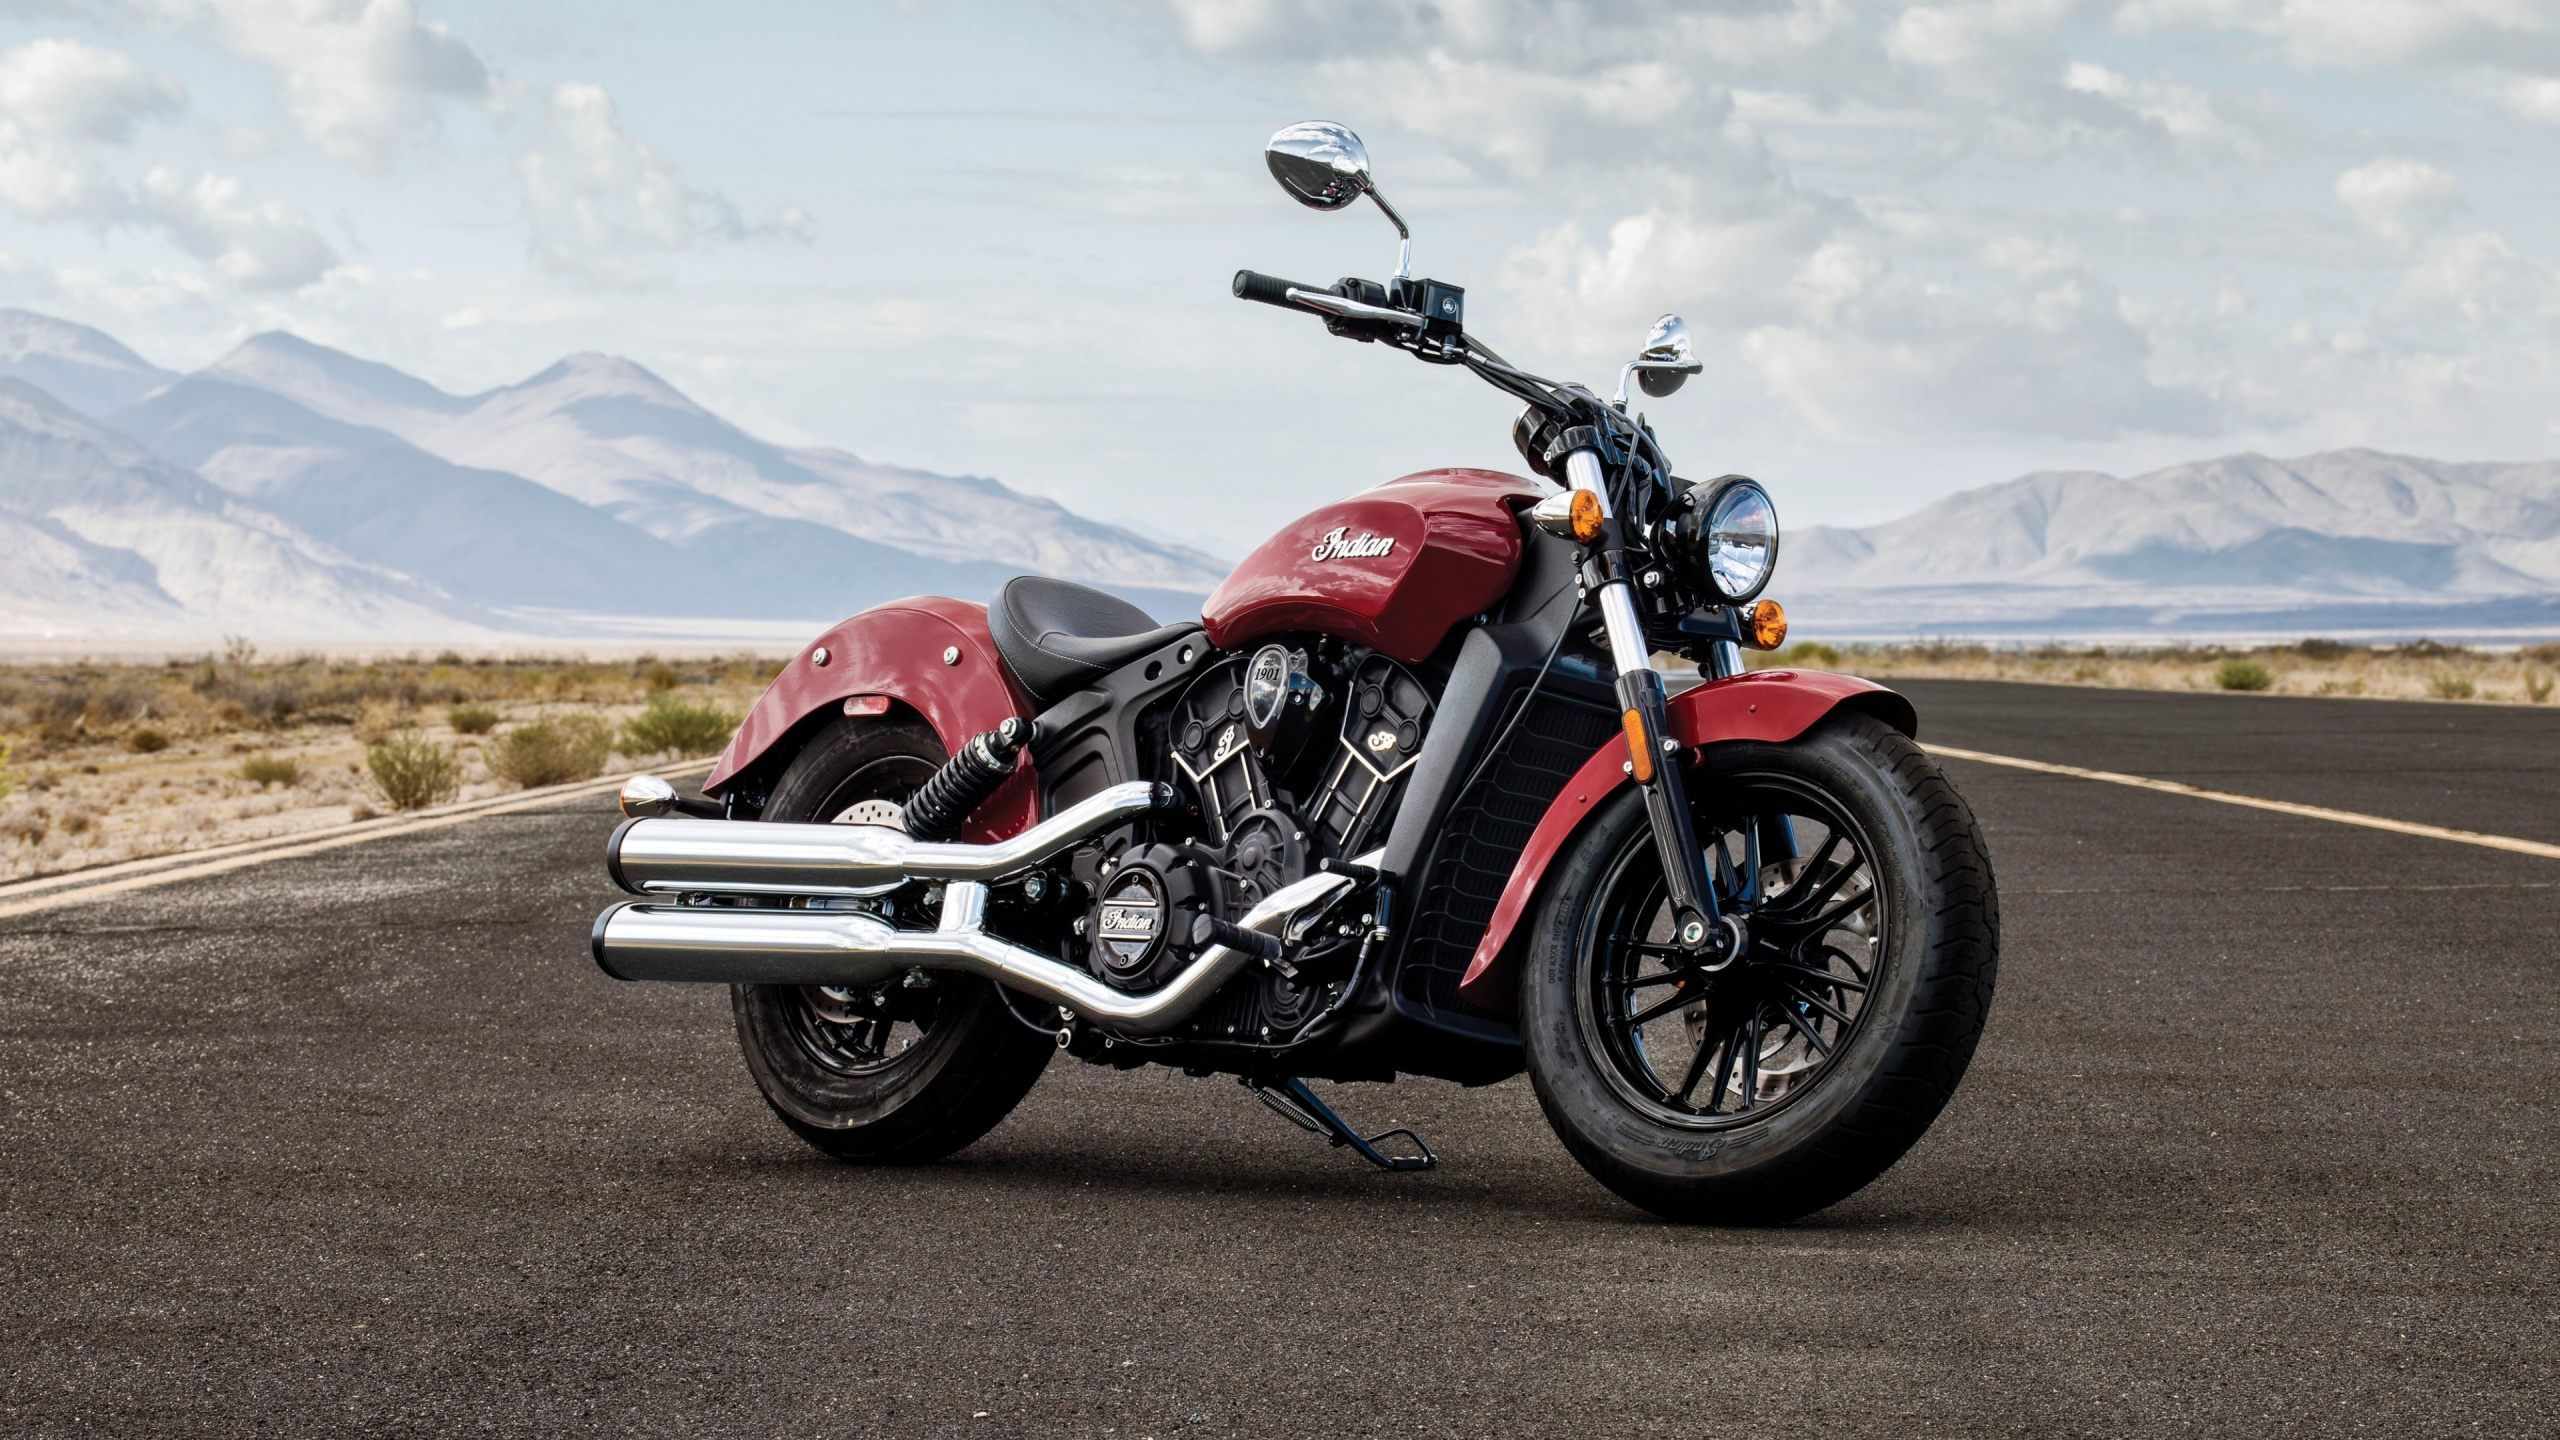 indian scout sixty bike wallpaper Indian motorcycle scout 2560x1440